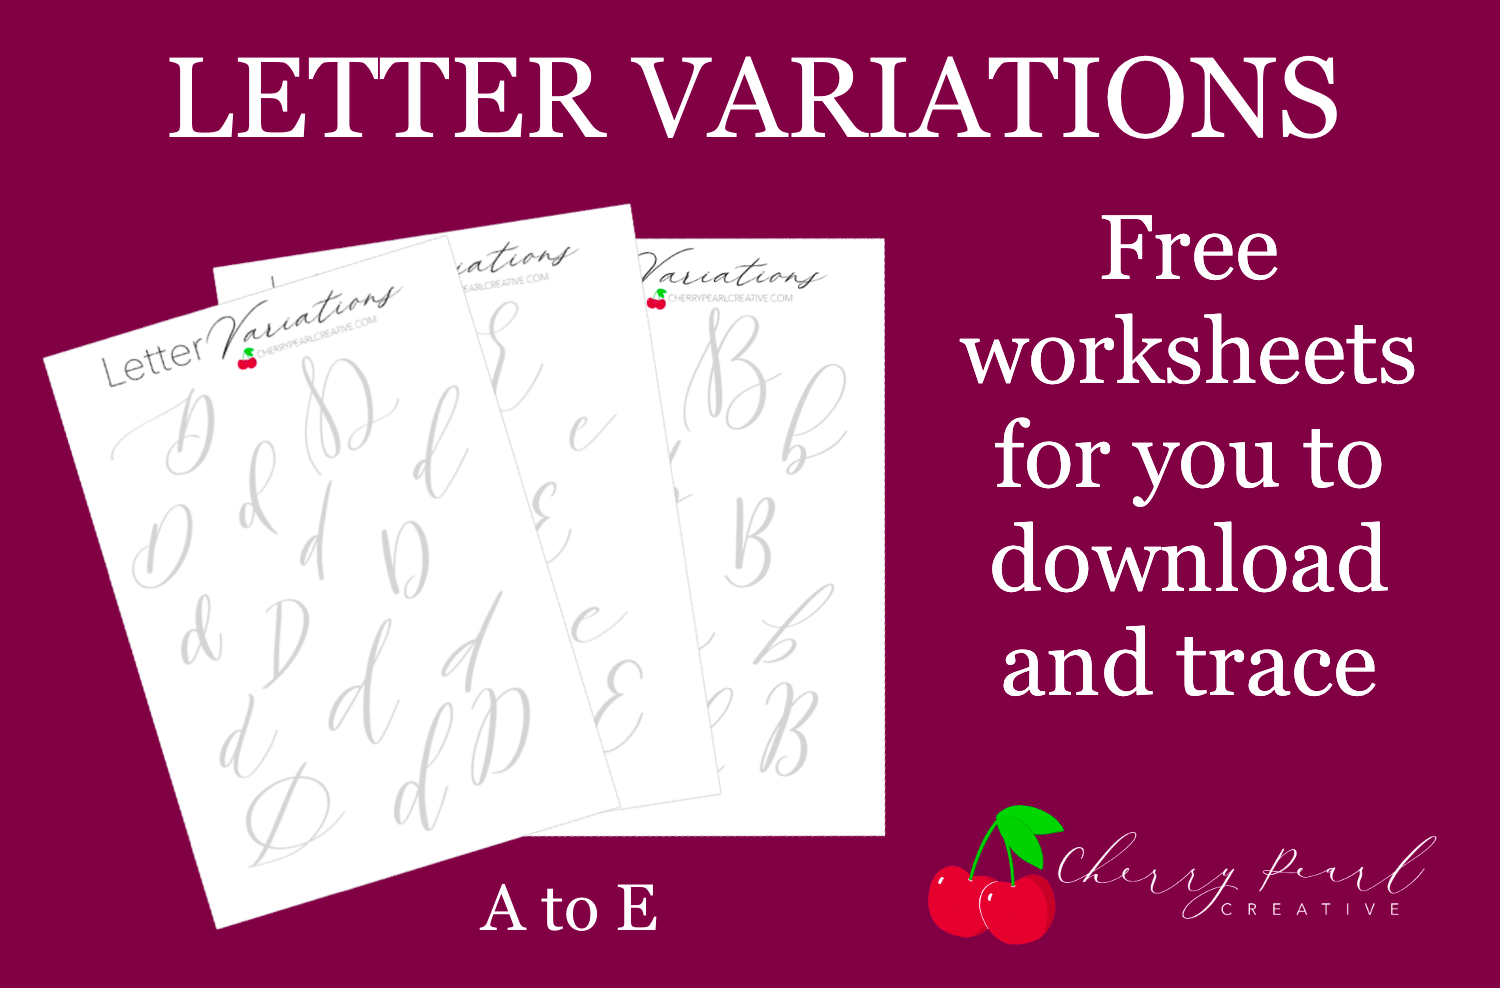 Download the free letter variations worksheets to trace and practice your brush calligraphy - cherry pearl creative.